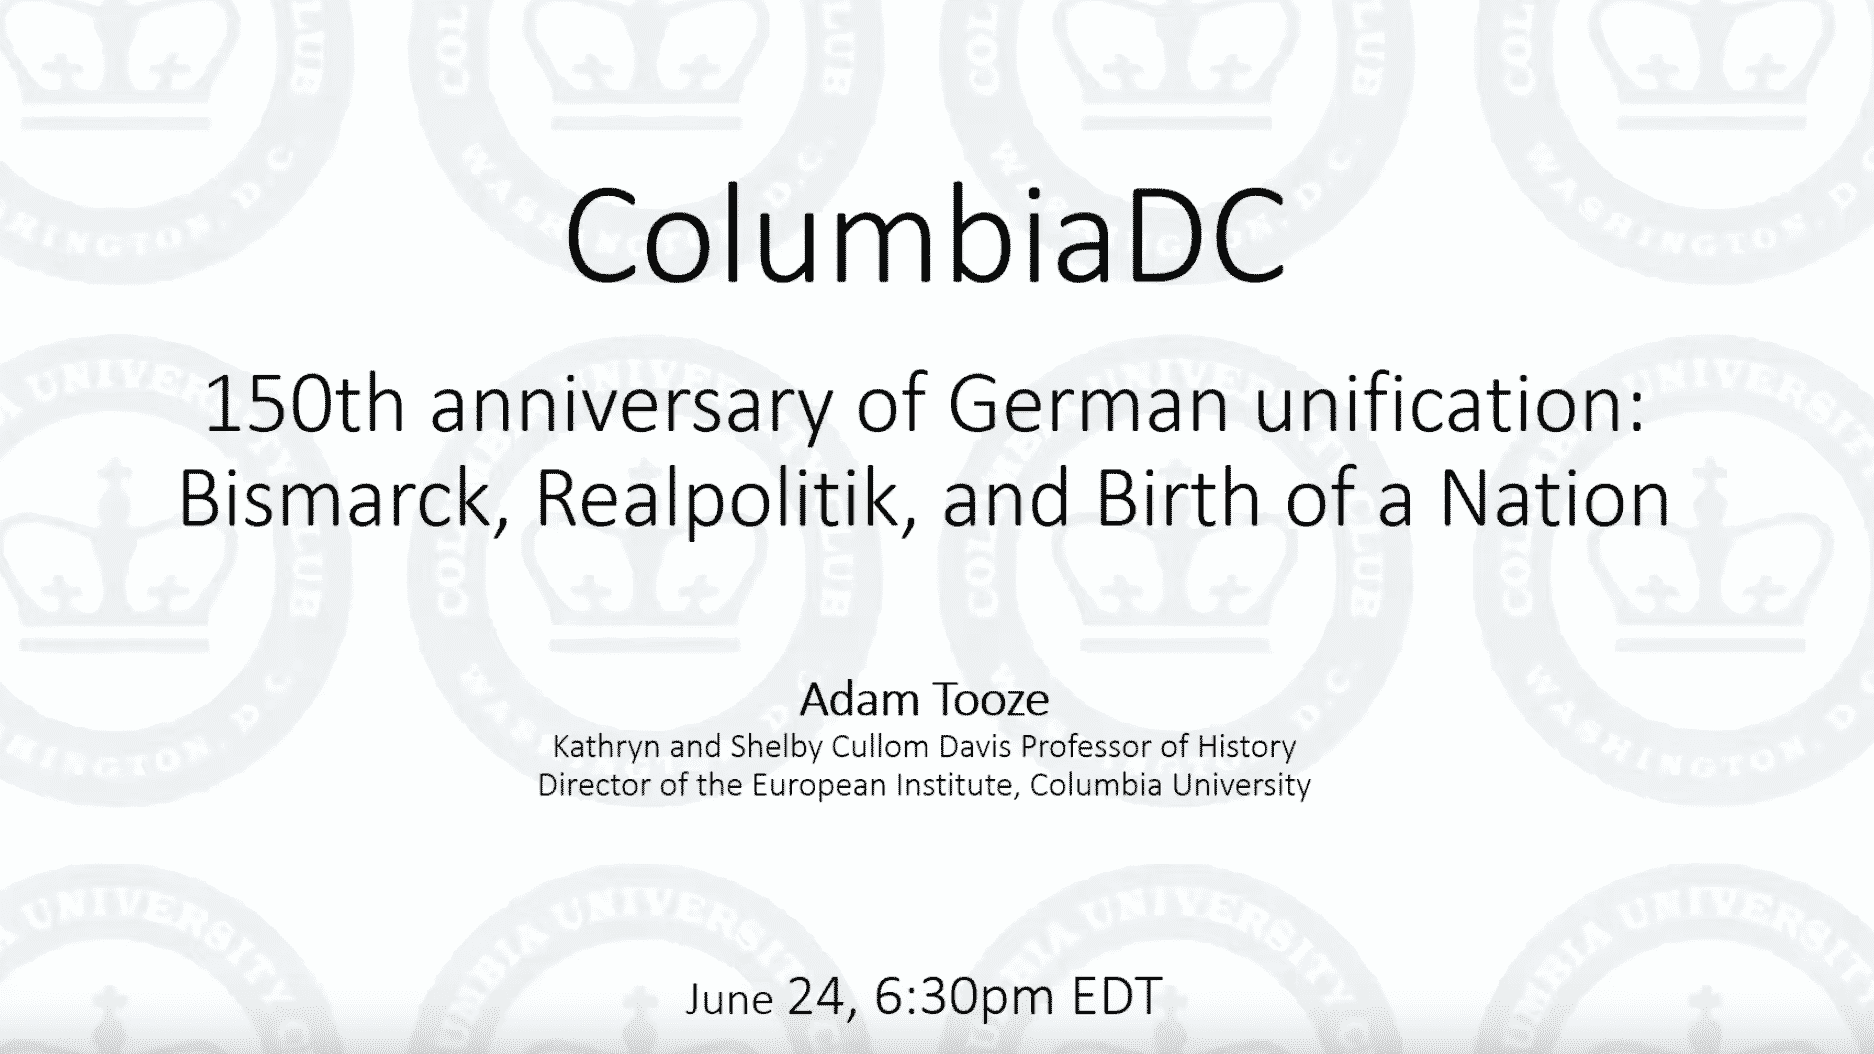 Columbia DC, 150th anniversary of German unification: Bismarck, Realpolitik, and Birth of a Nation